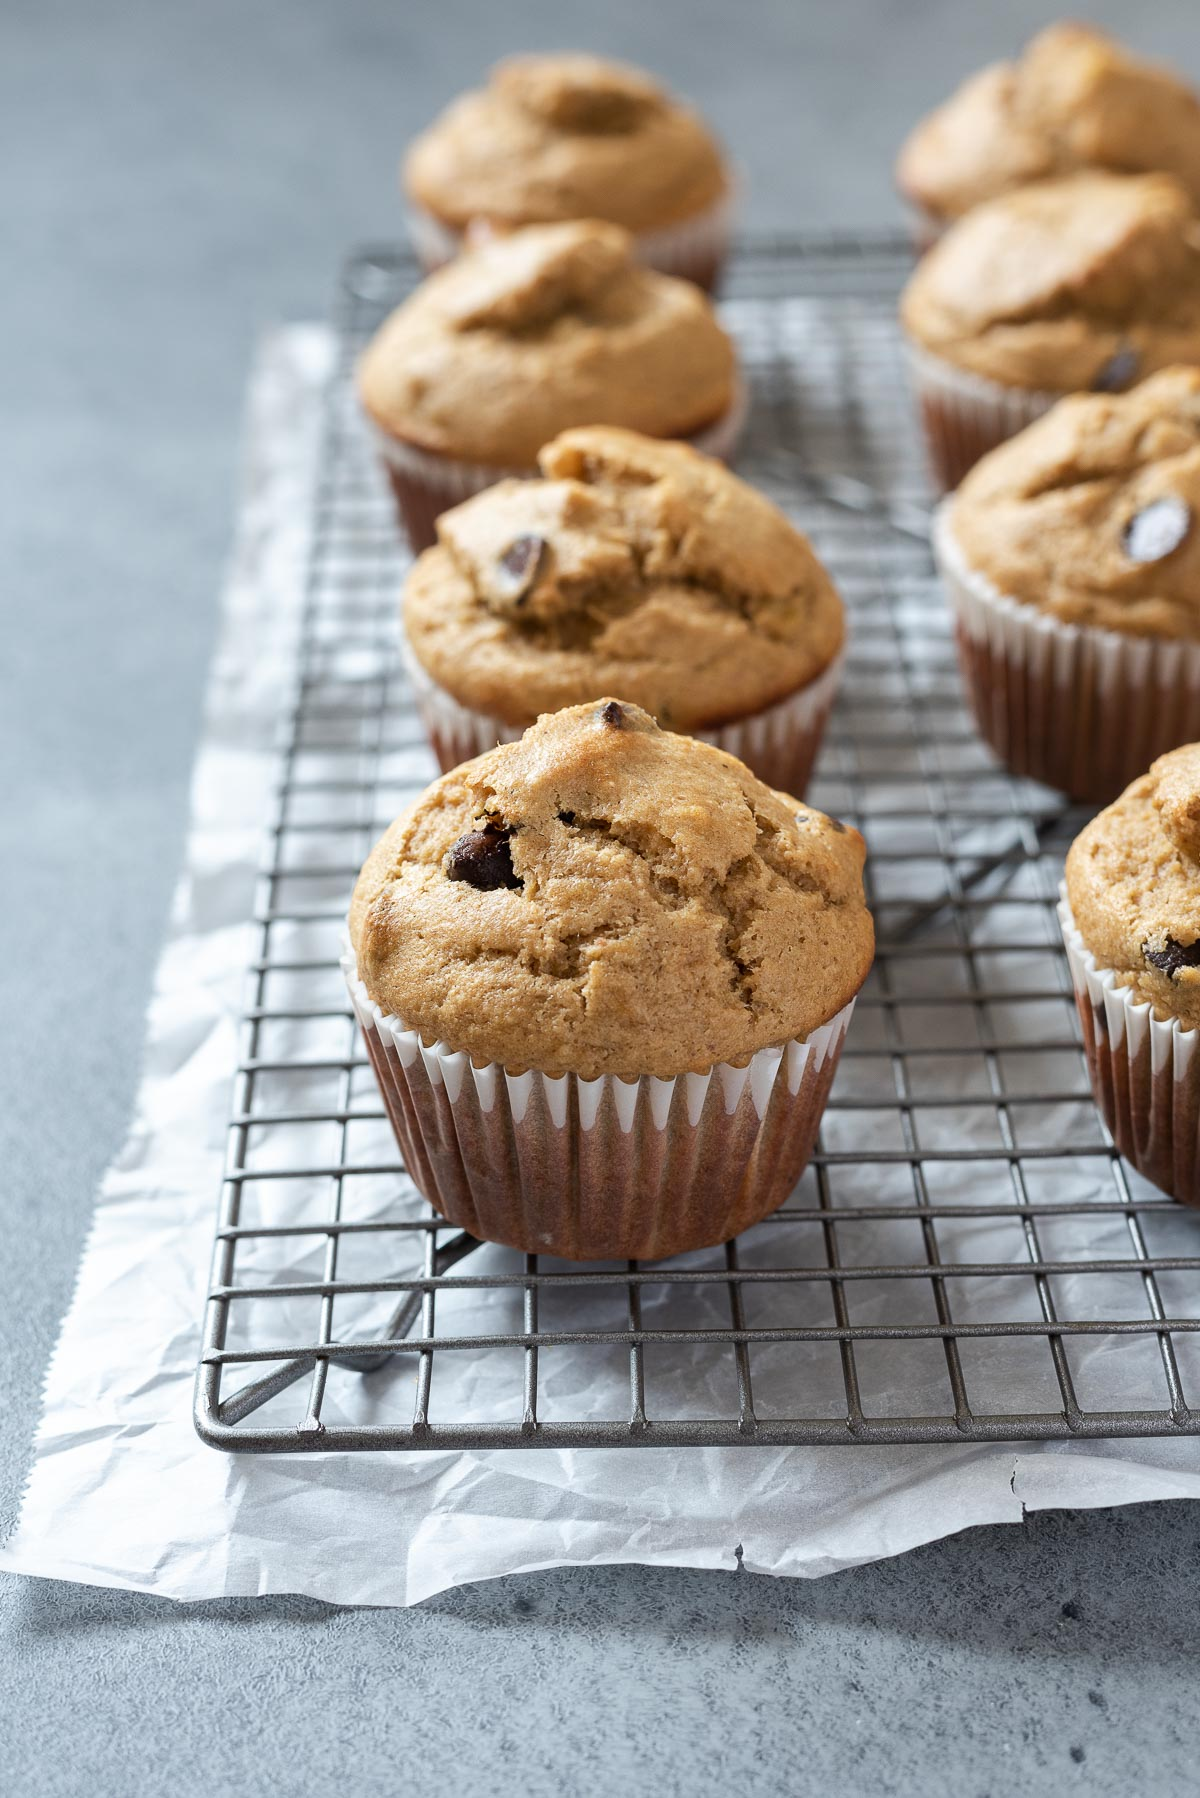 Peanut butter banana muffins on wire rack